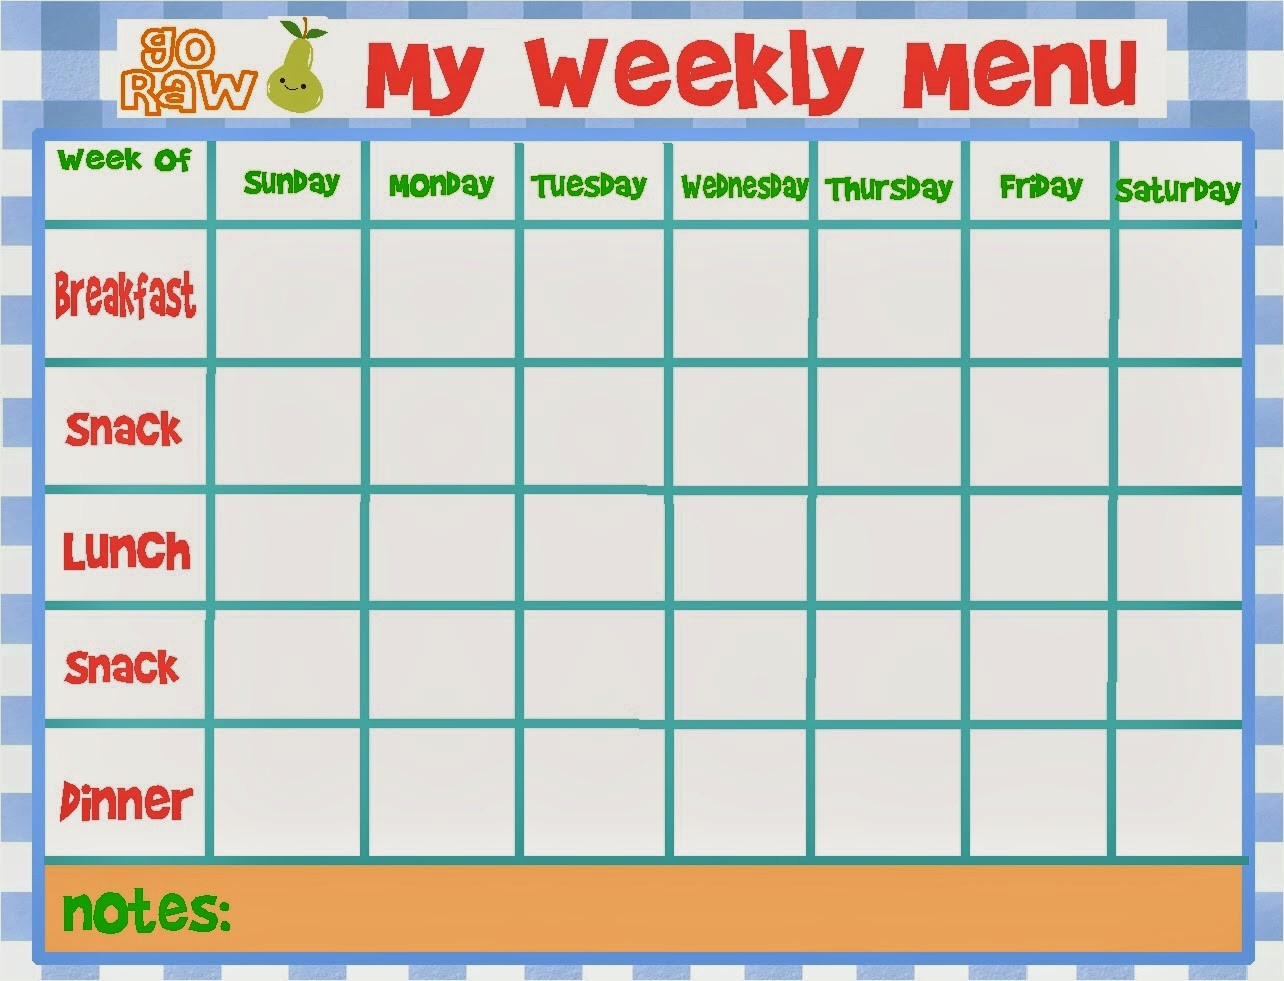 Daycare Menu Templates Free Download Inspirational Weekly Menu Template